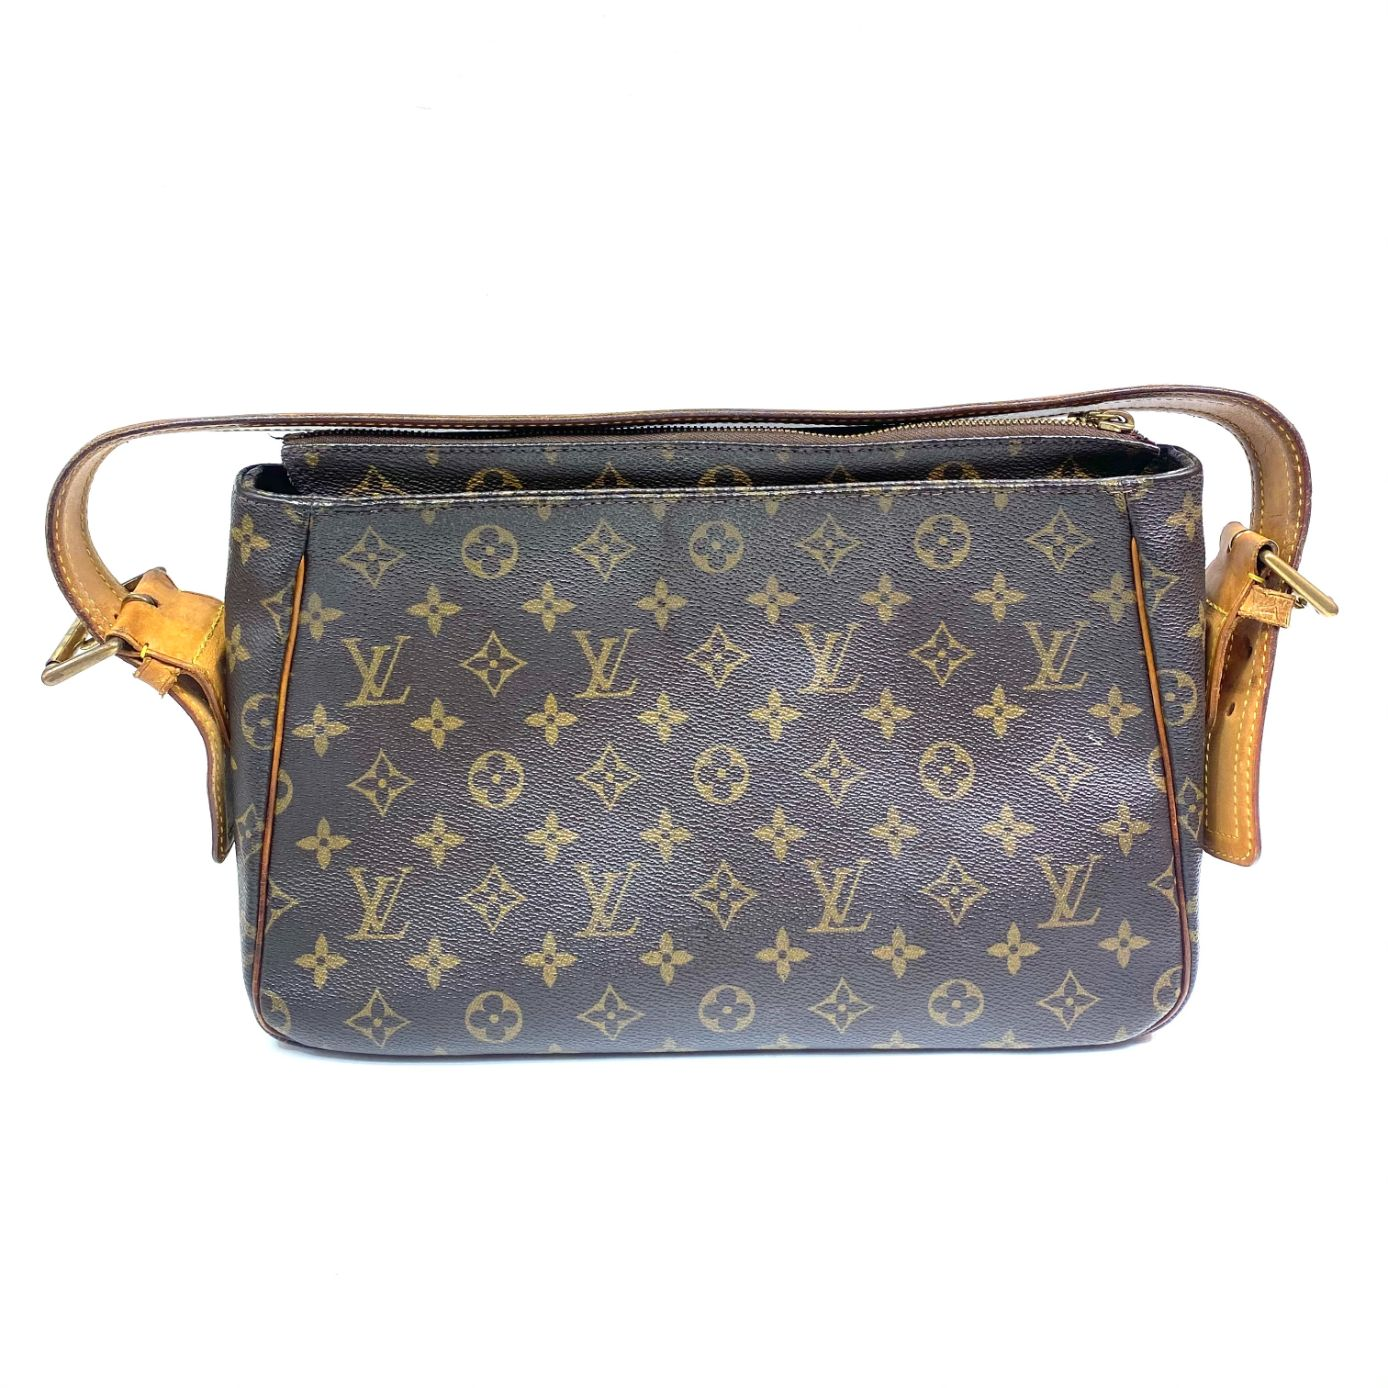 Bolsa Louis Vuitton Viva Cite GM Monograma